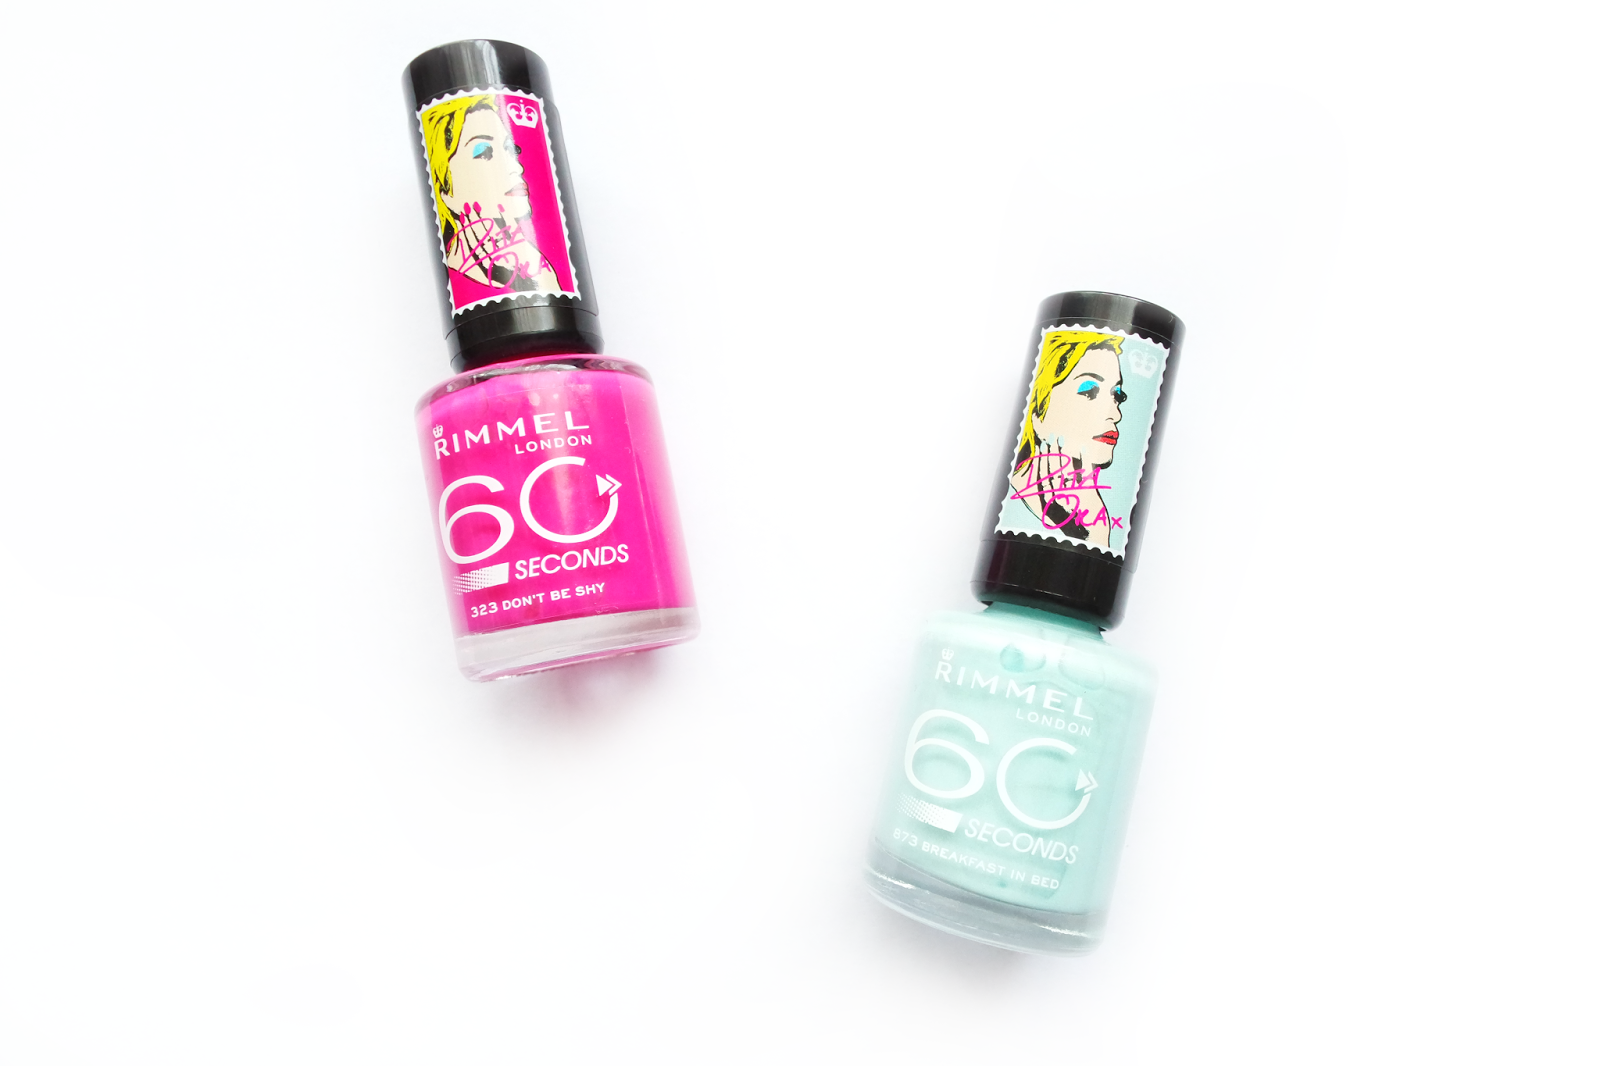 rimmel x rita ora collection, review, 60 seconds nail polish, colour rush intense colour balms